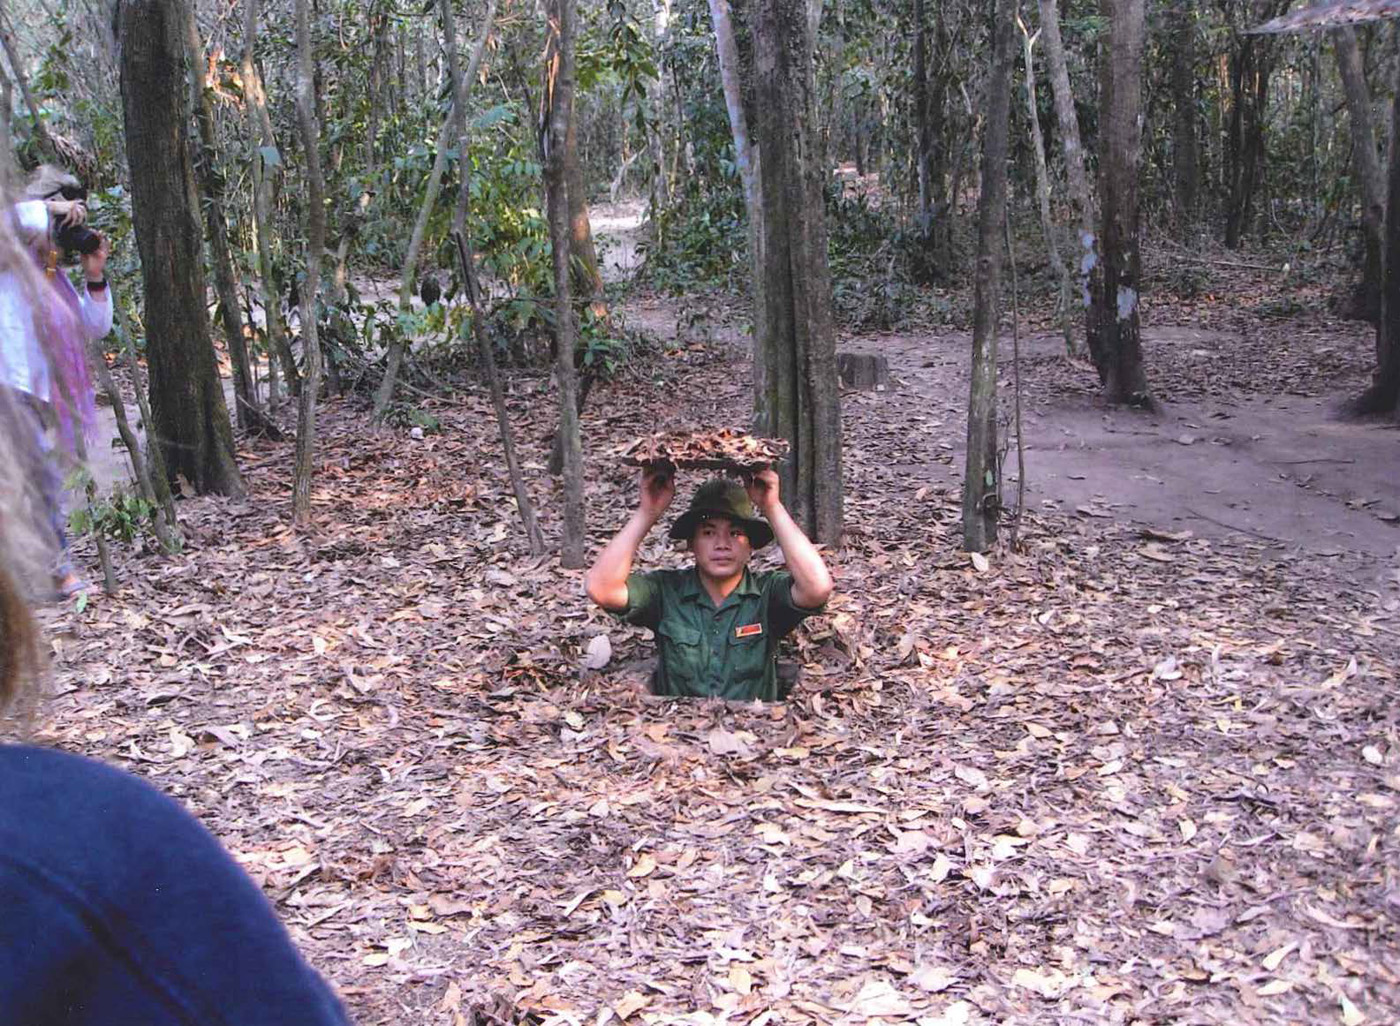 Spider hole demonstration at Chu Chi tunnels near Saigon – photo taken in March 2013